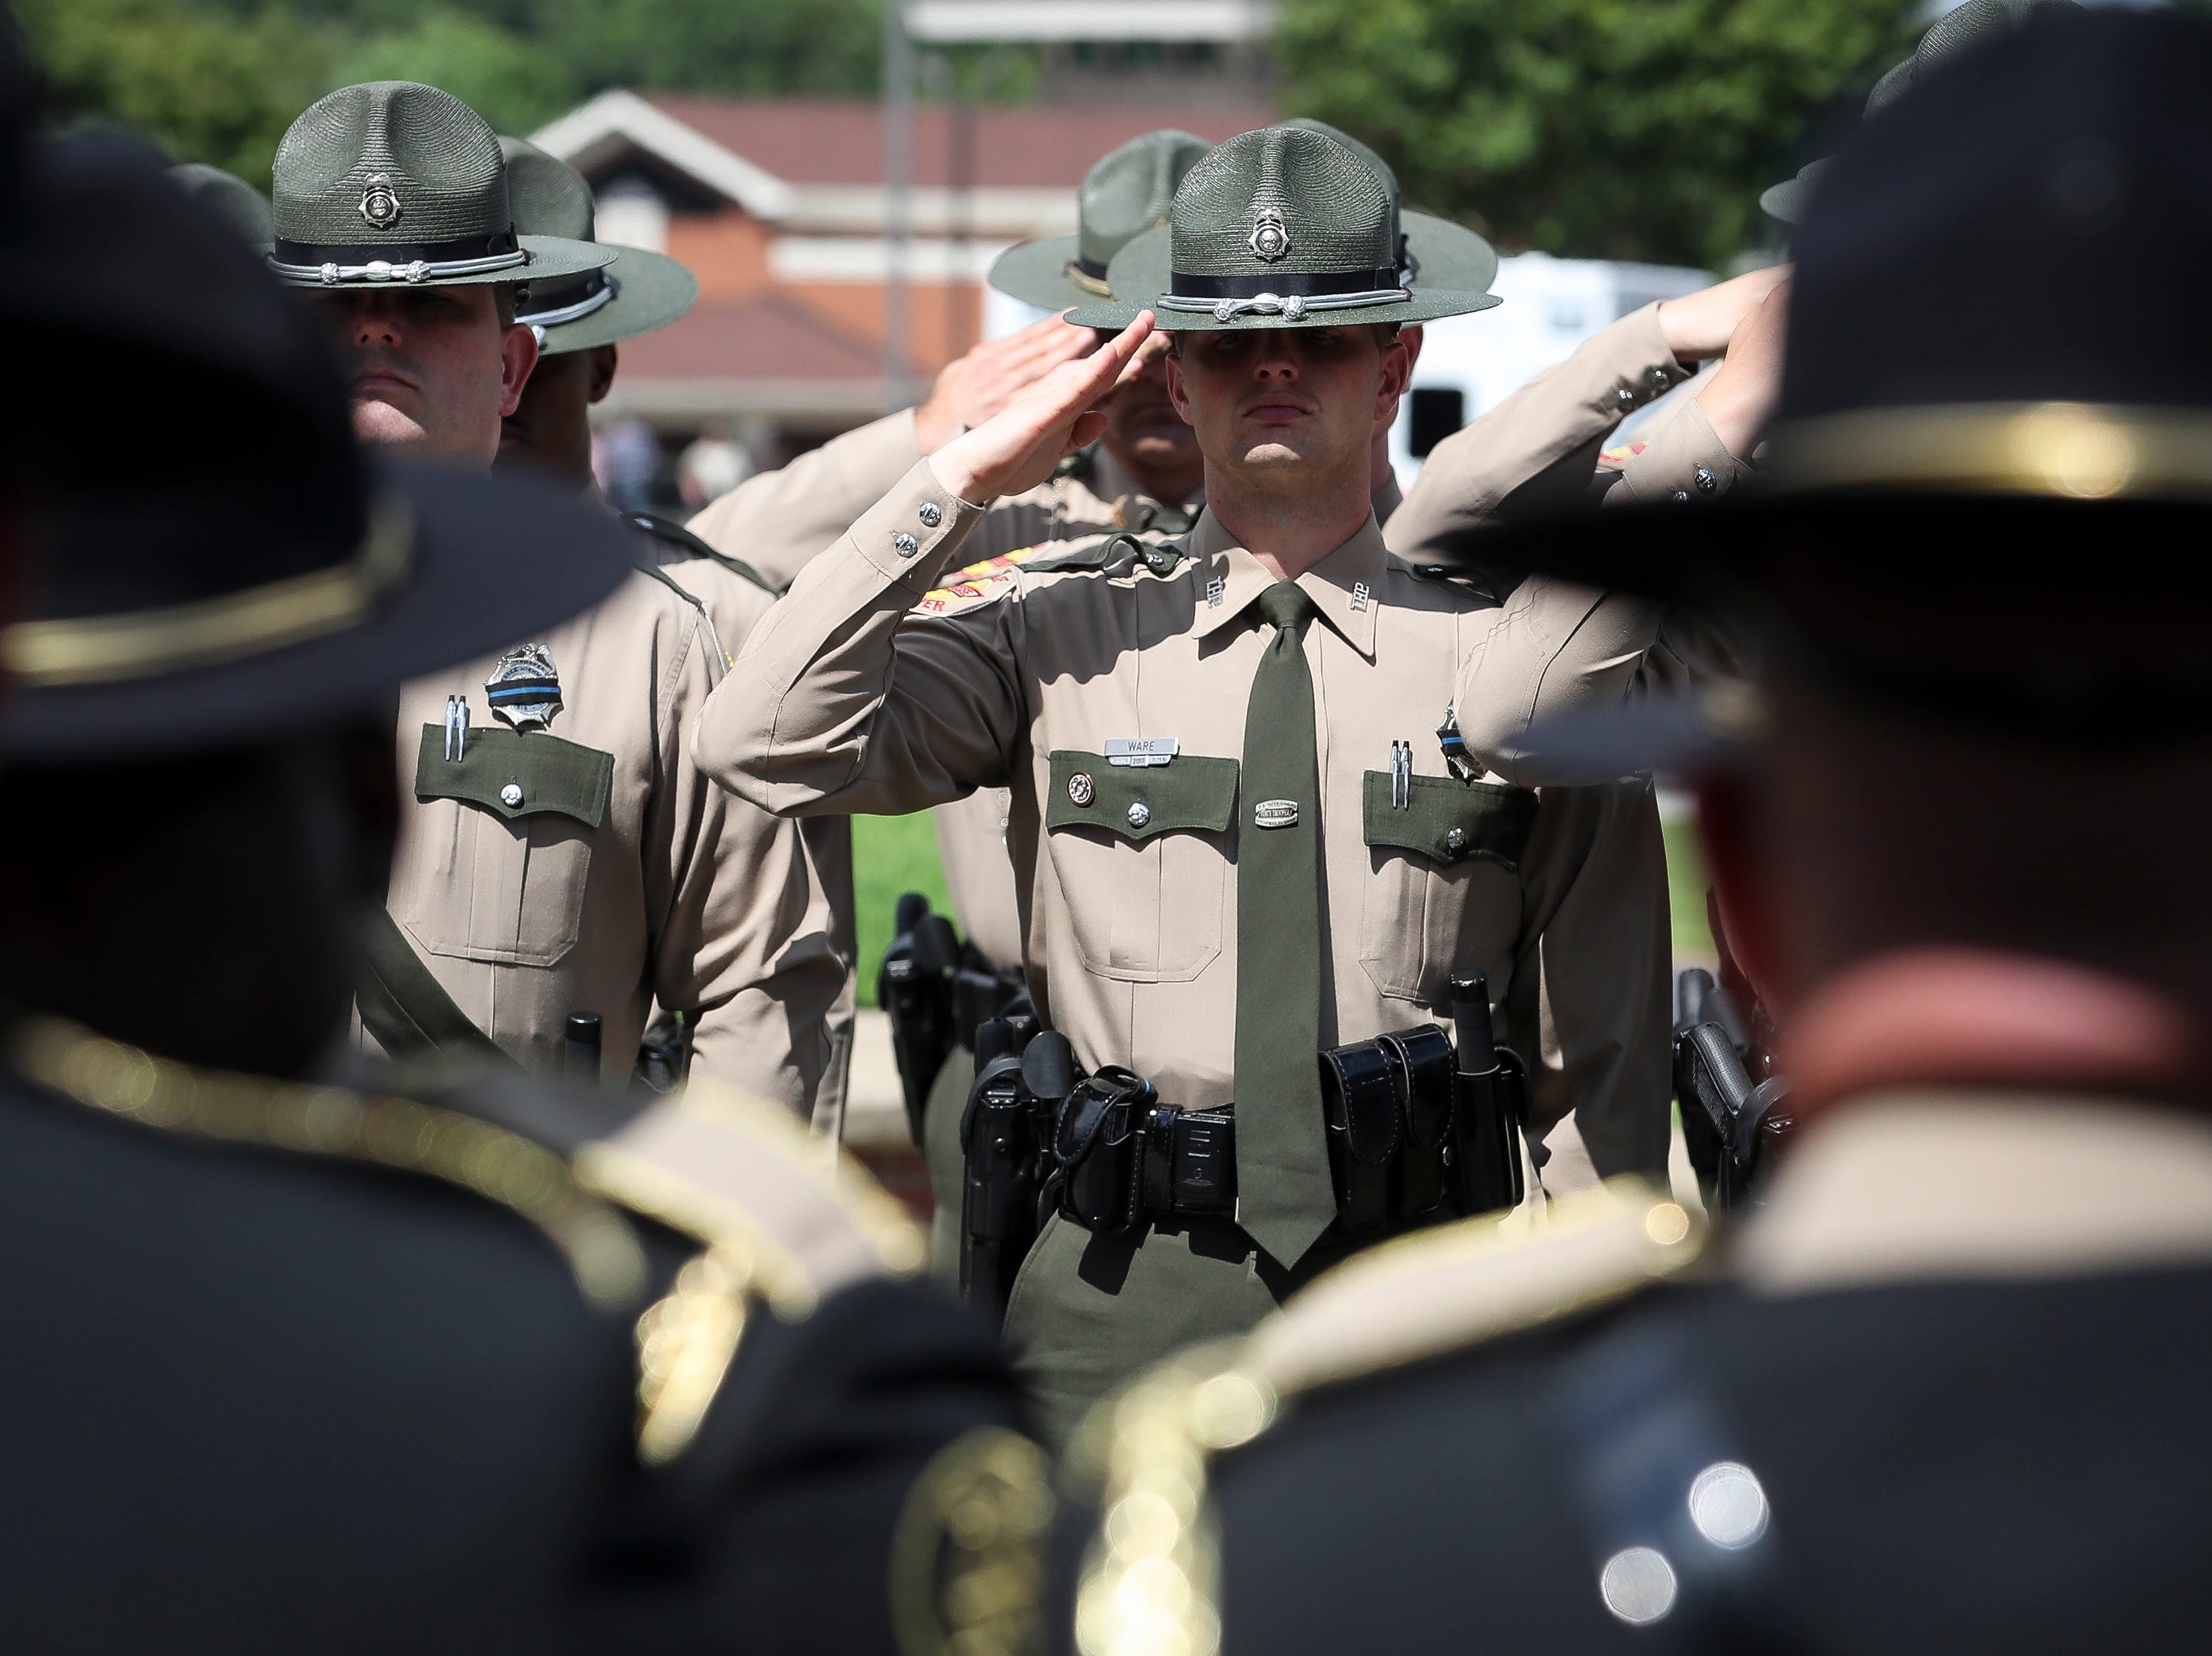 Tennessee State Troopers salute as the casket is carried out after the funeral service for Tennessee State Trooper Matthew Gatti at West Jackson Baptist Church in Jackson, Tenn., Monday, May 13, 2019. Gatti died in the line of duty in an accident while responding to a car fire on I-40 in Madison County on May 6.